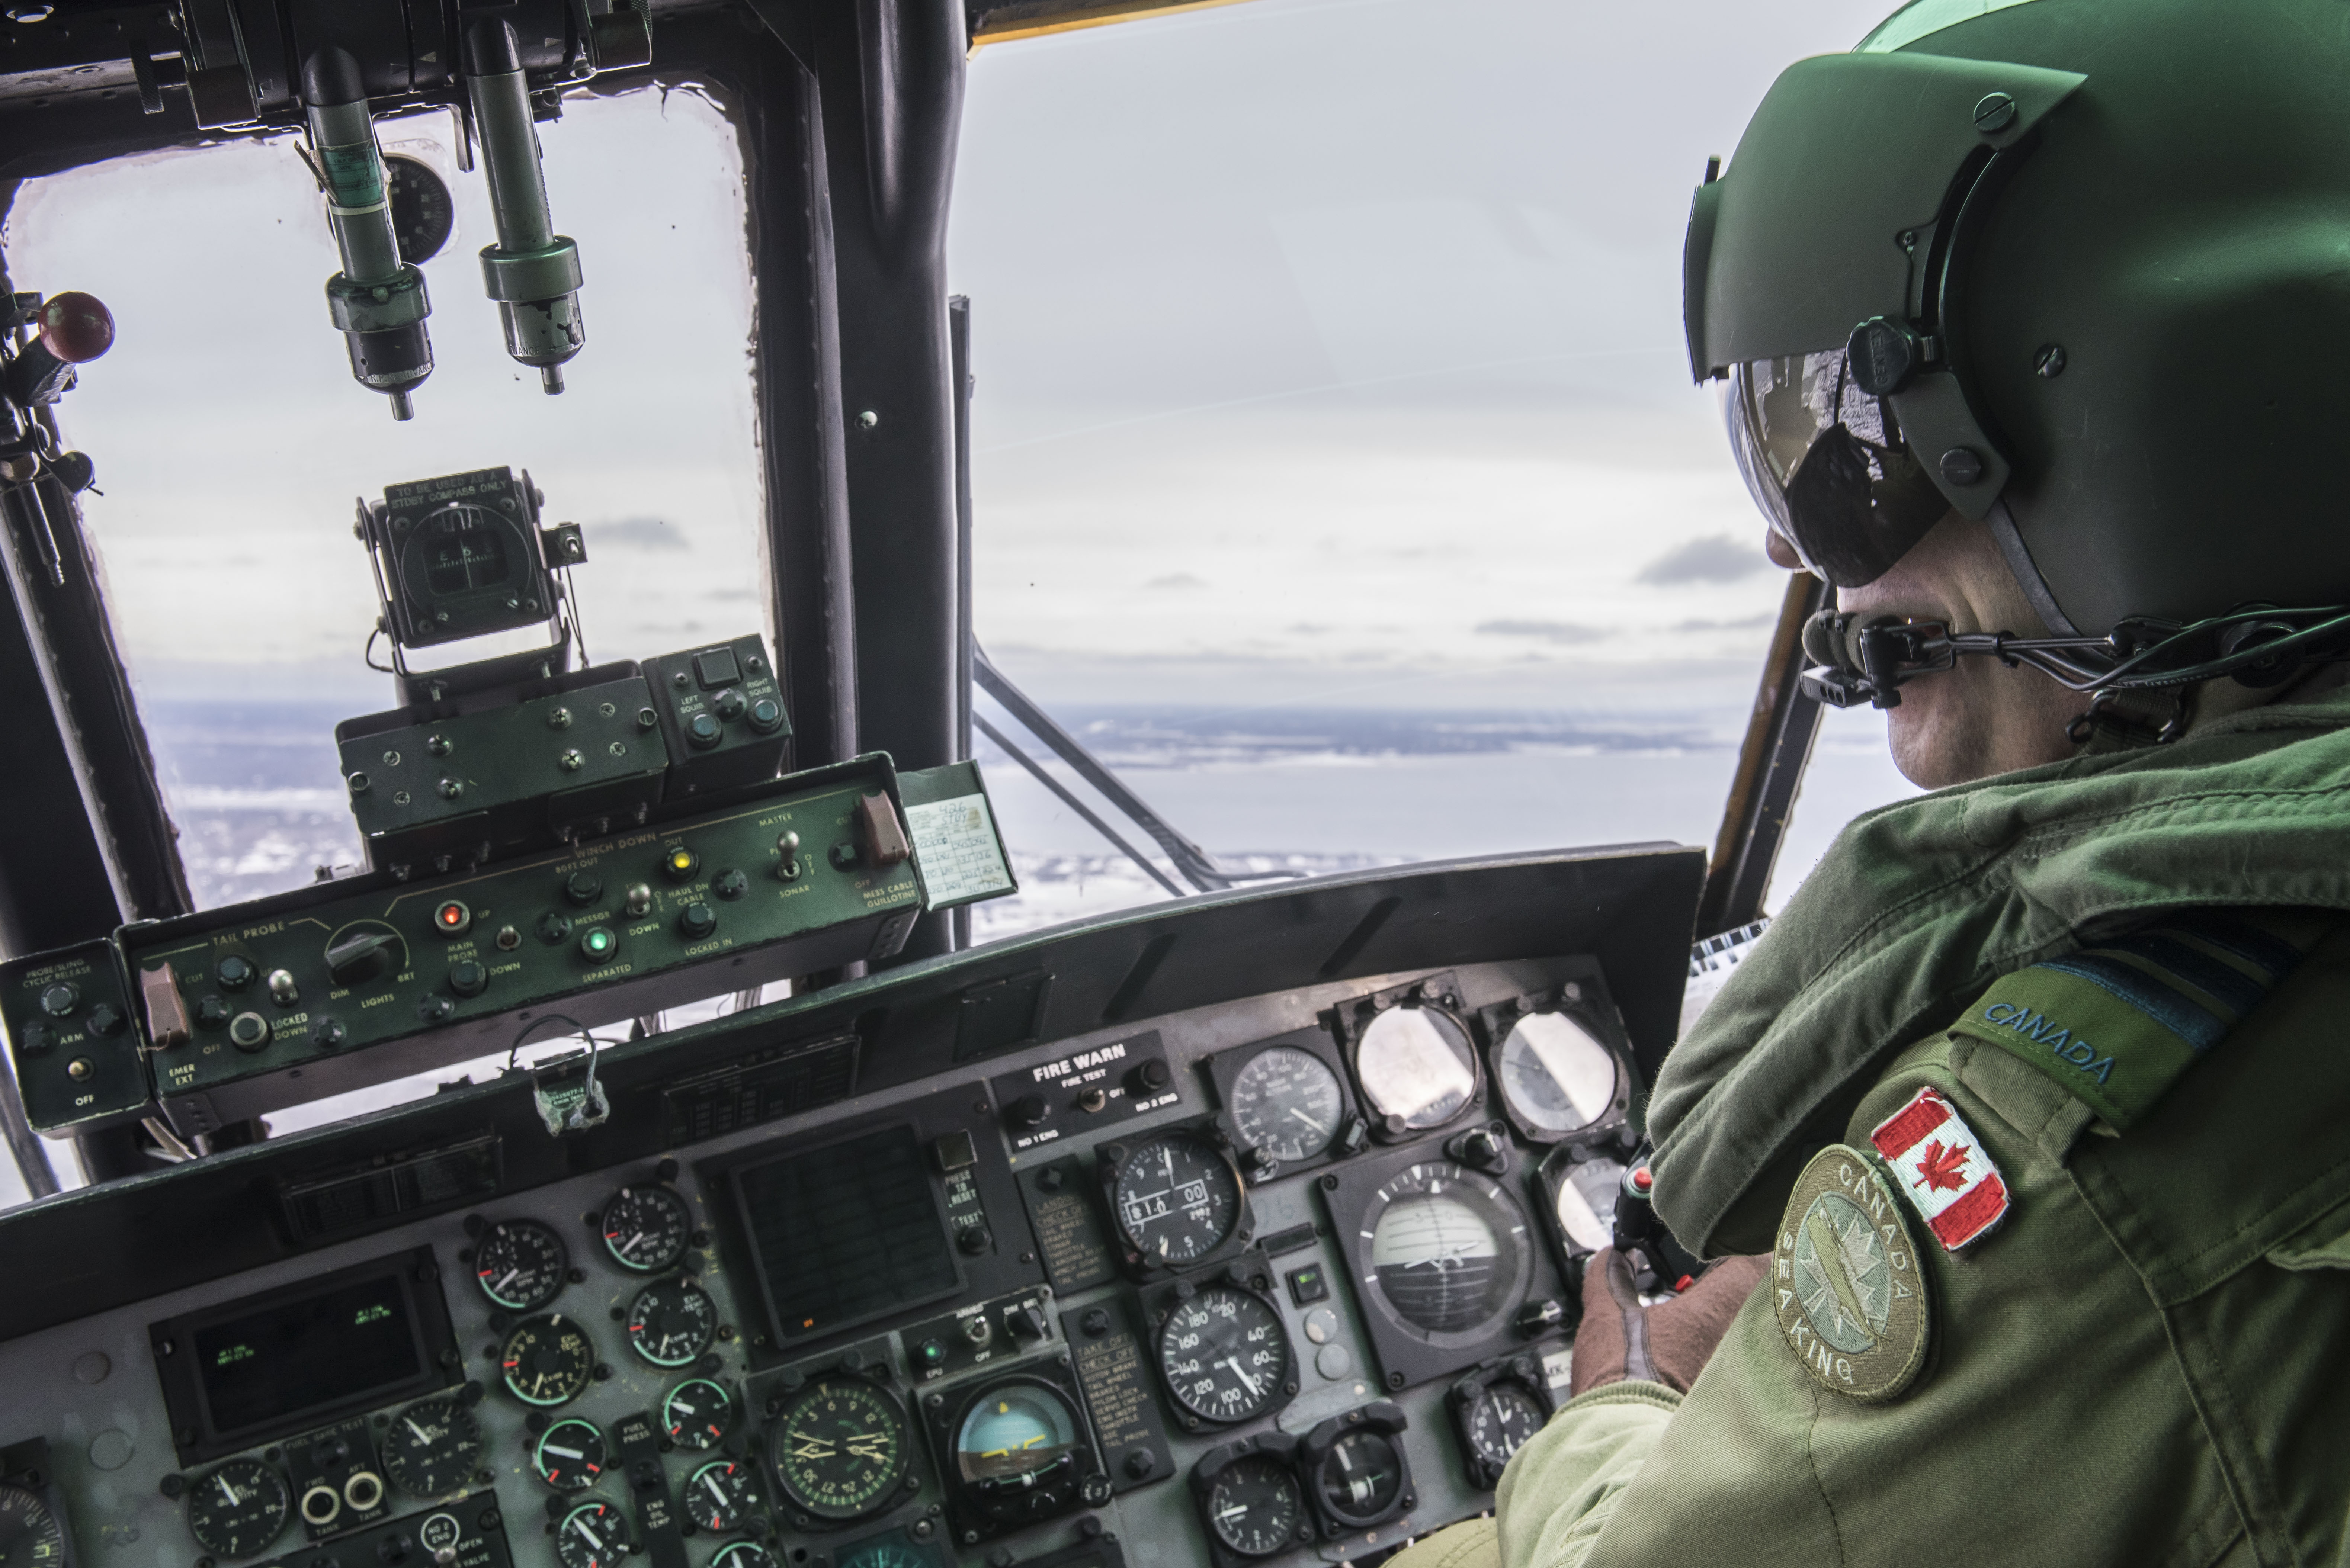 Lieutenant-Colonel Jody Smith, commanding officer of 423 Maritime Helicopter Squadron, flies a CH-124 Sea King helicopter near Halifax Harbour in Nova Scotia, on January 19, 2018, in preparation for the squadron's final Sea King flight on January 26. PHOTO: Corporal Anthony Laviolette, SW04-2018-0020-018